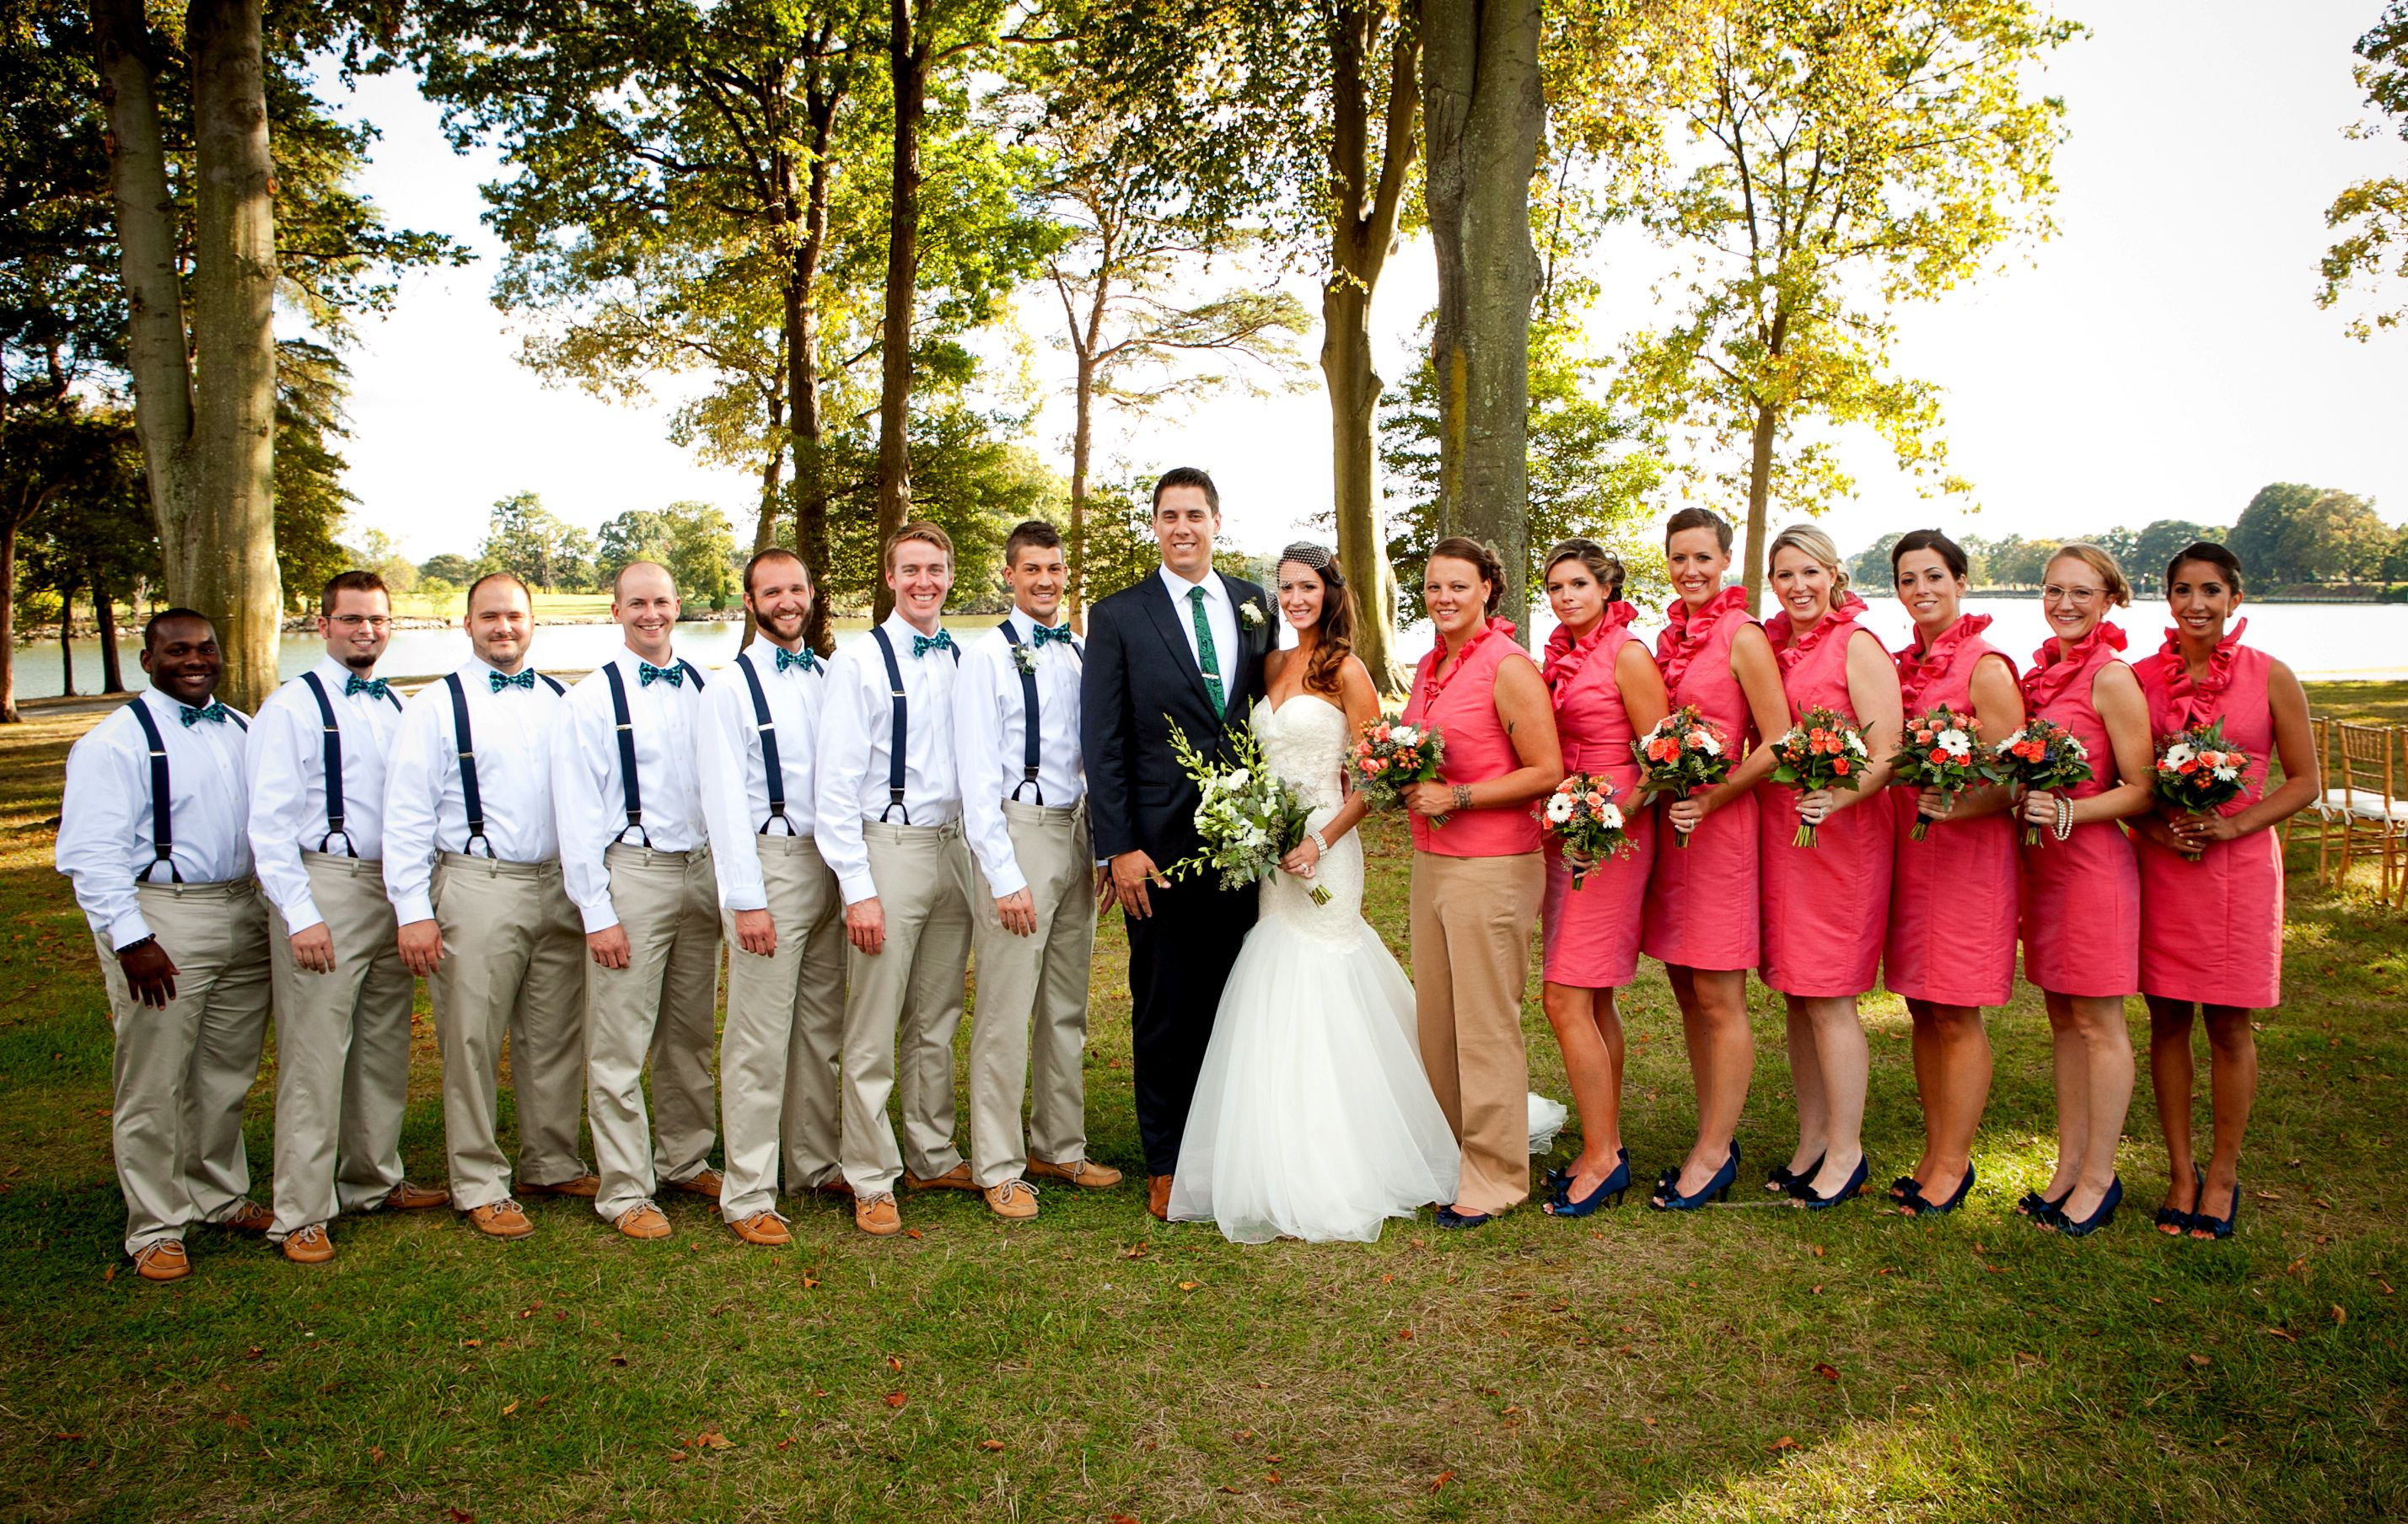 Elegant Vintage September Wedding Groom And Groomsmen Groom And Groomsmen Style Groom Style